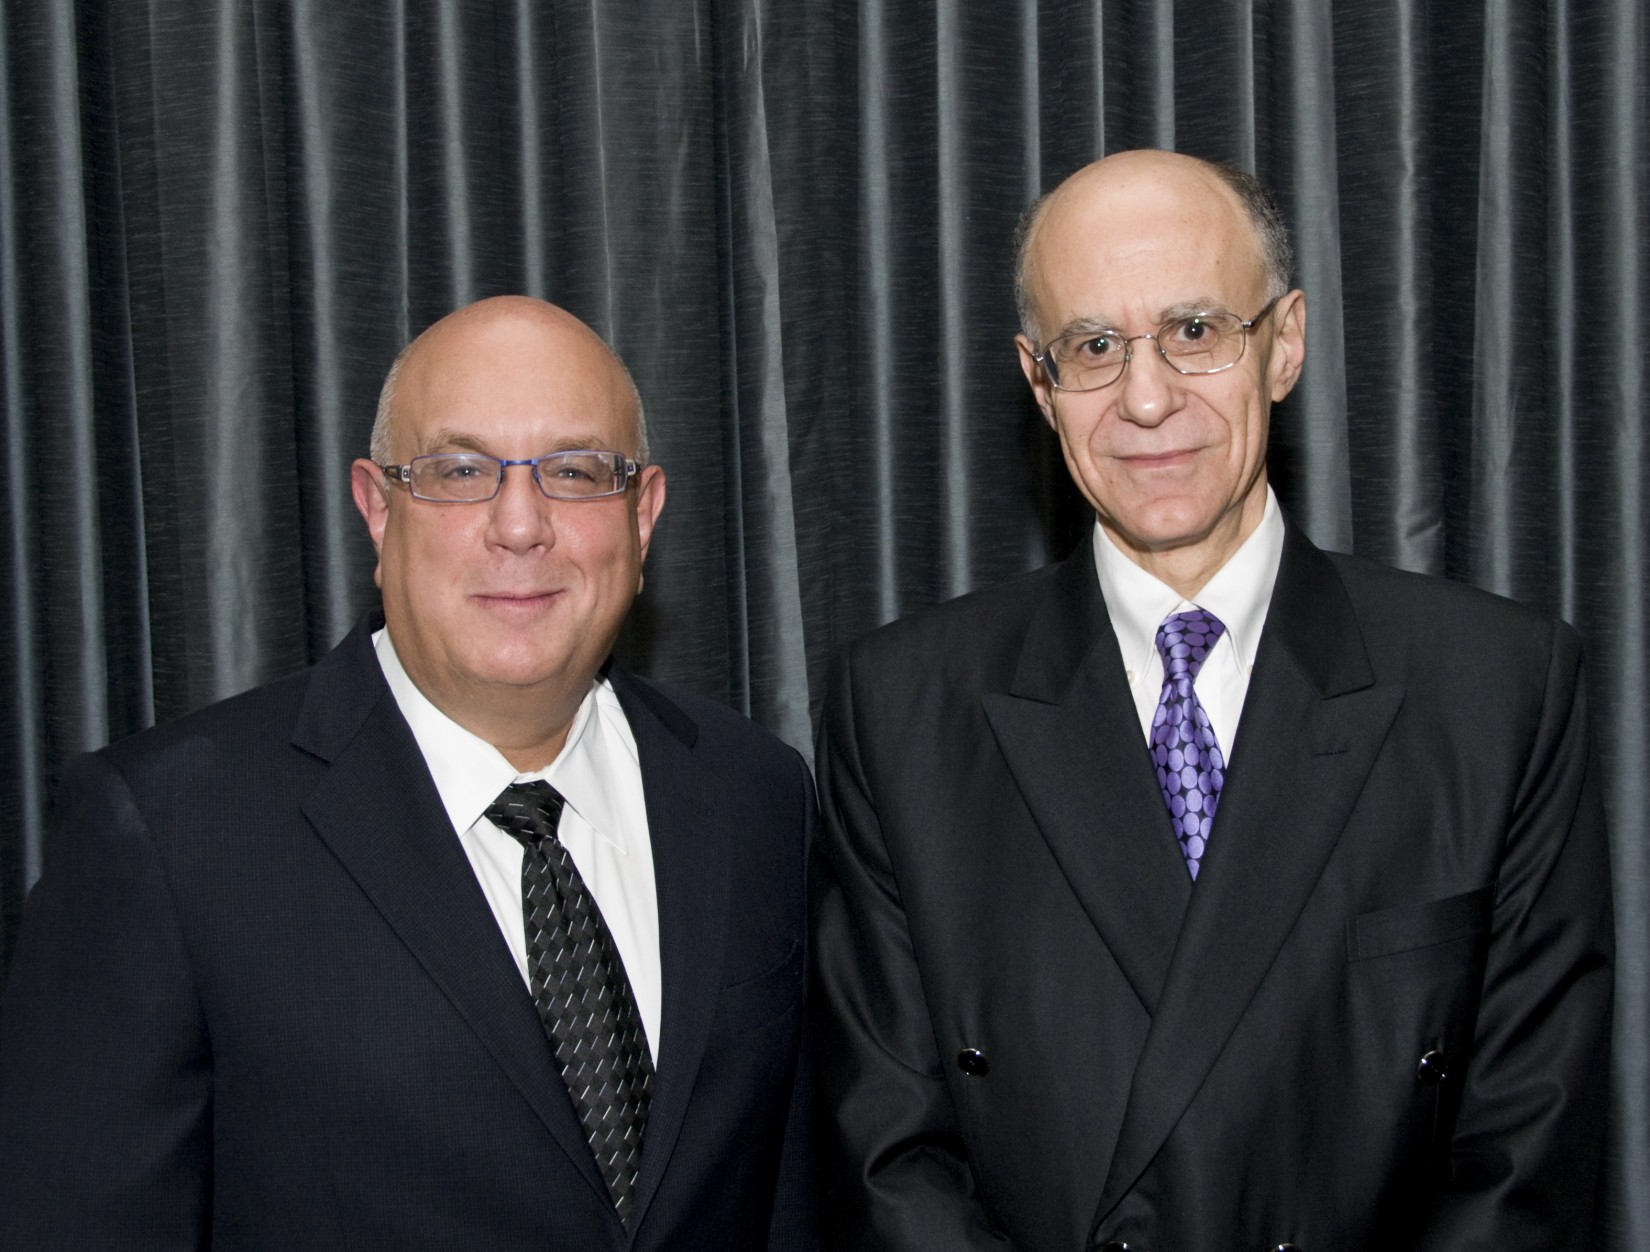 The Hon. Michael H. Simon and Dean Robert Klonoff.